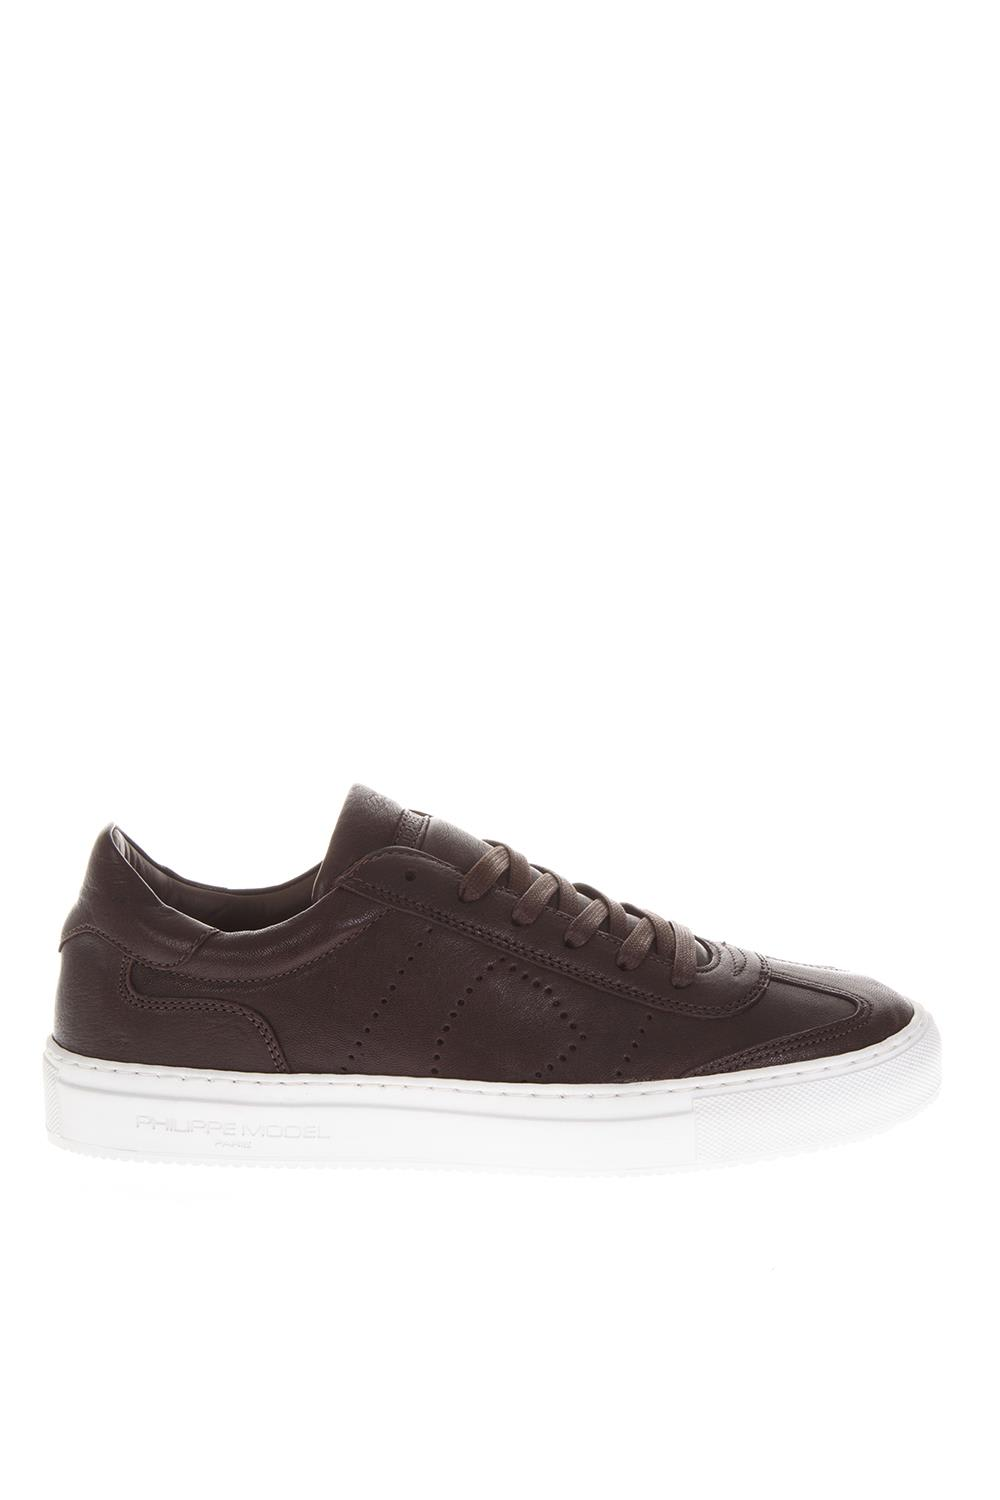 Philippe Model Belleville West Antracite Sneakers In Leather